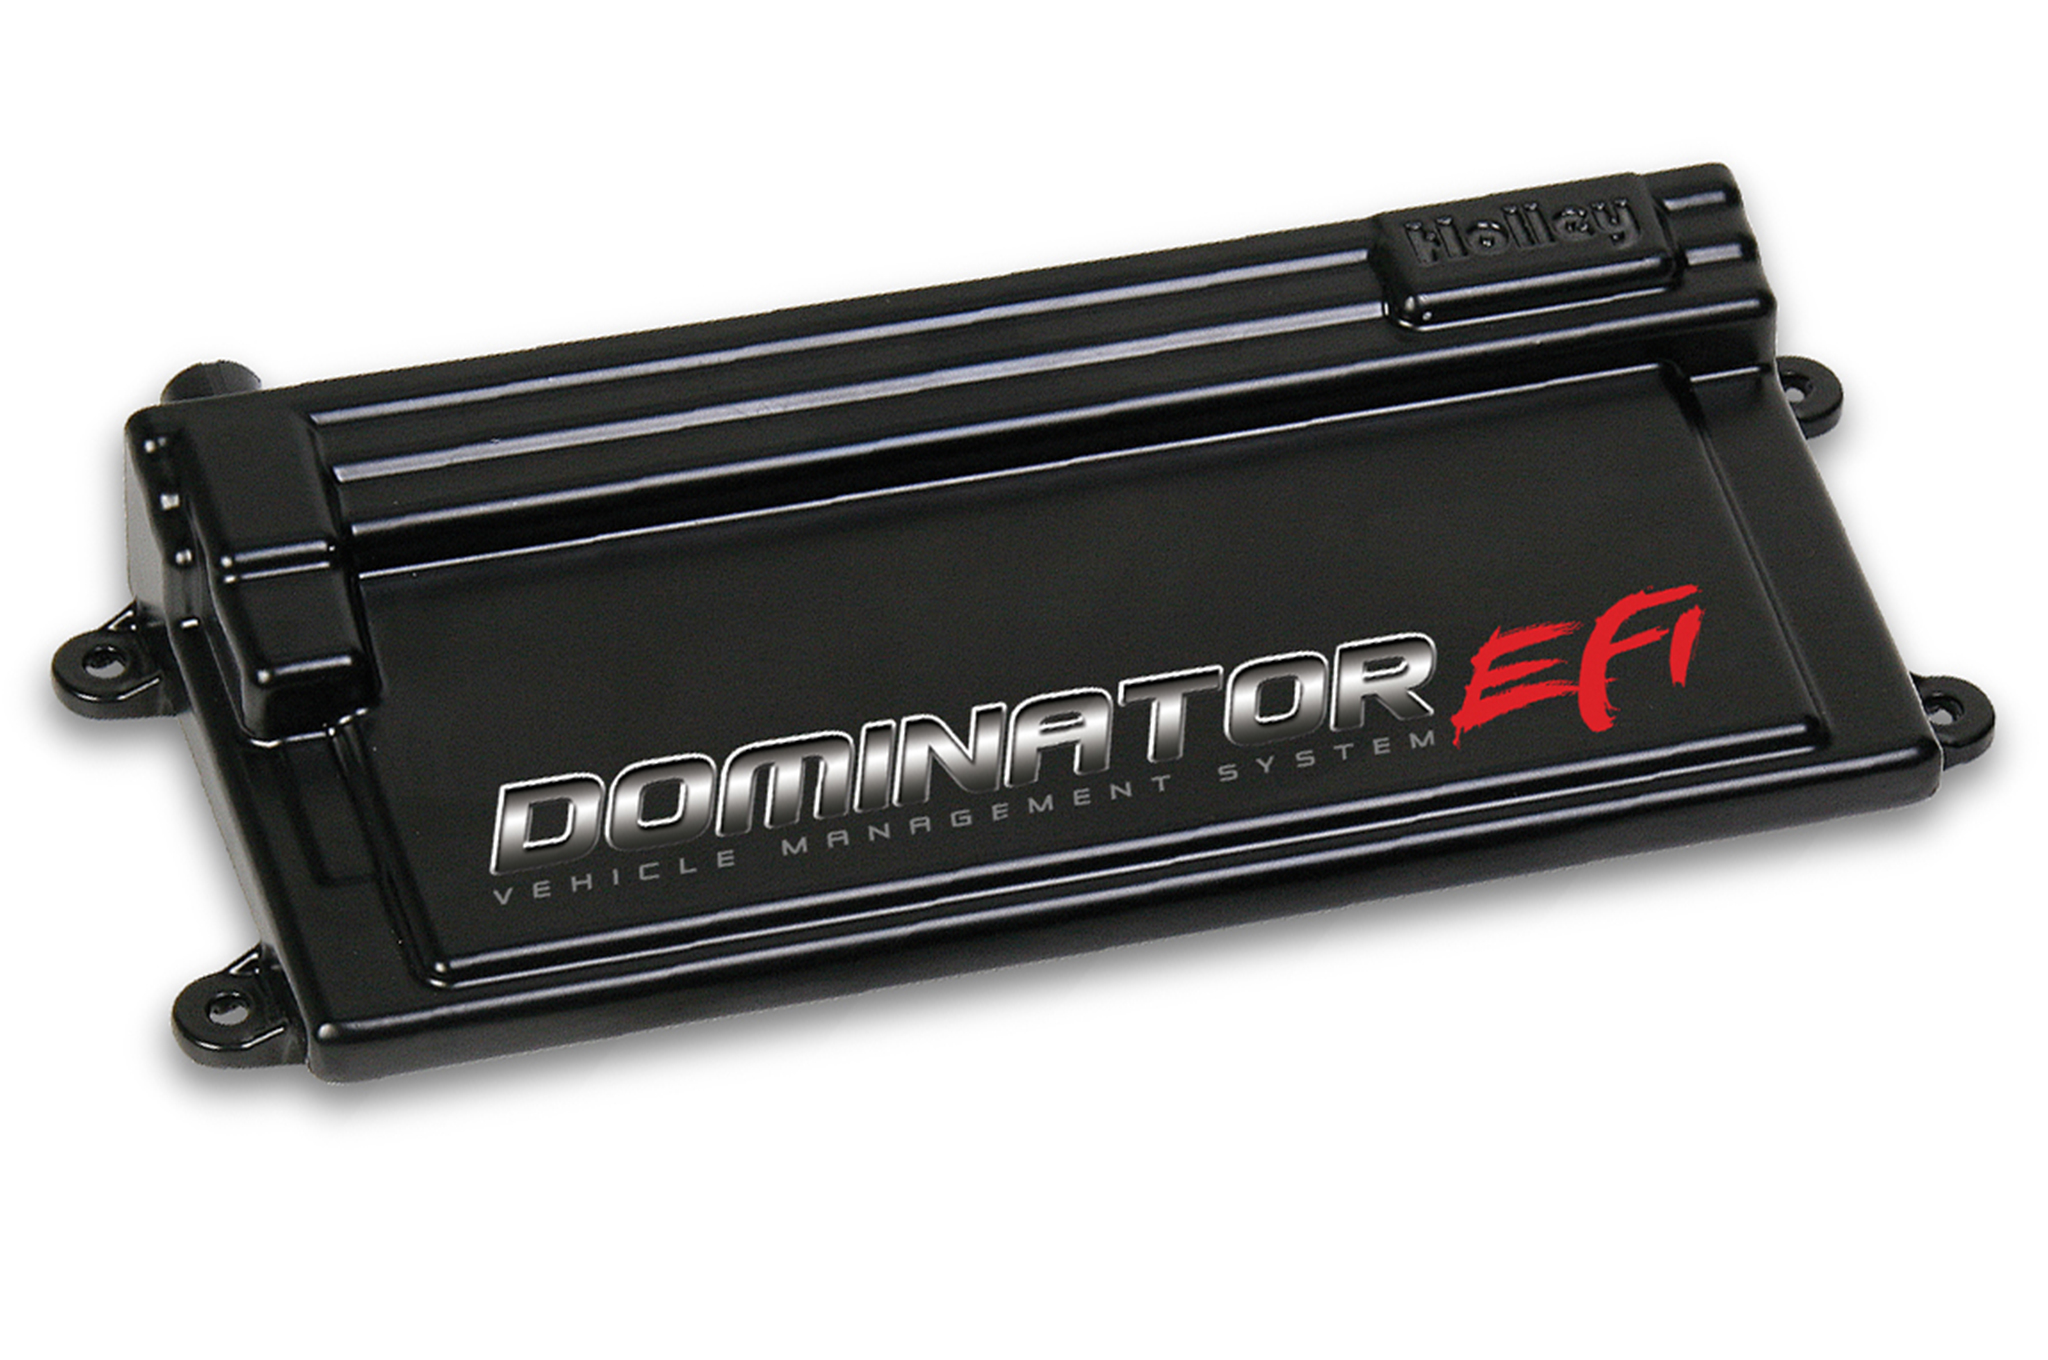 Holley's flagship Dominator ECU also works with the Gen III Hemi Plug-And-Play system and adds even more premium features like support for drive-by-wire. The antithesis of the factory Chrysler ECU, Holley's Dominator allows you to do anything you can think of, including supporting a very sophisticated race set-up.